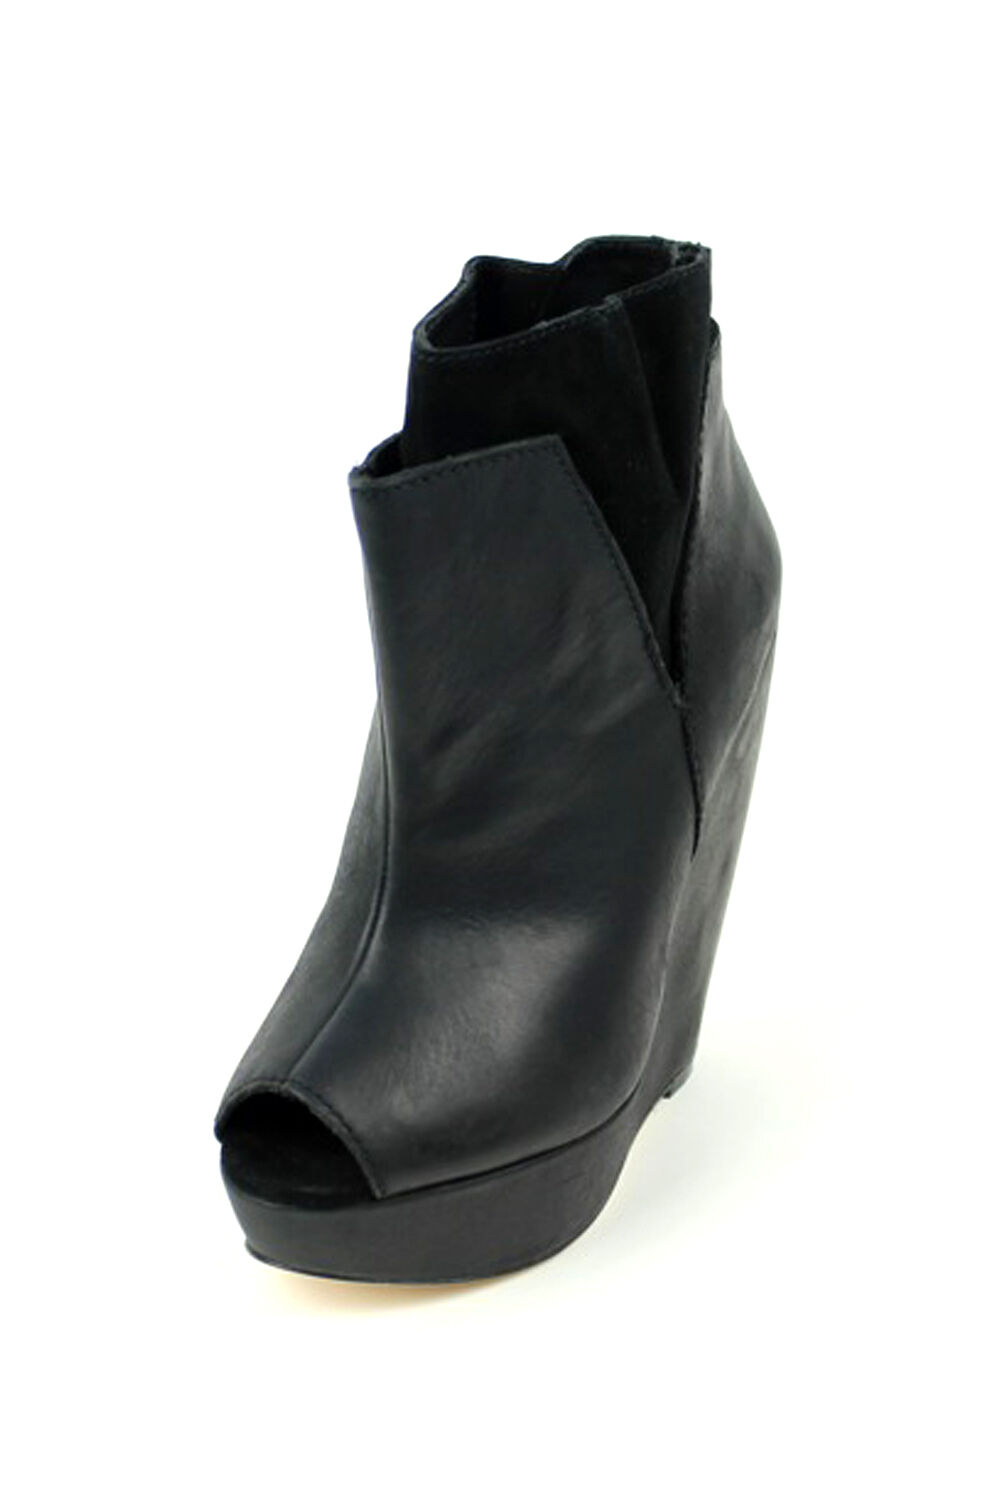 Joe's Jeans Corby Black Leather Boots $295 Bootie Wanton Wedges High Ankle NEW